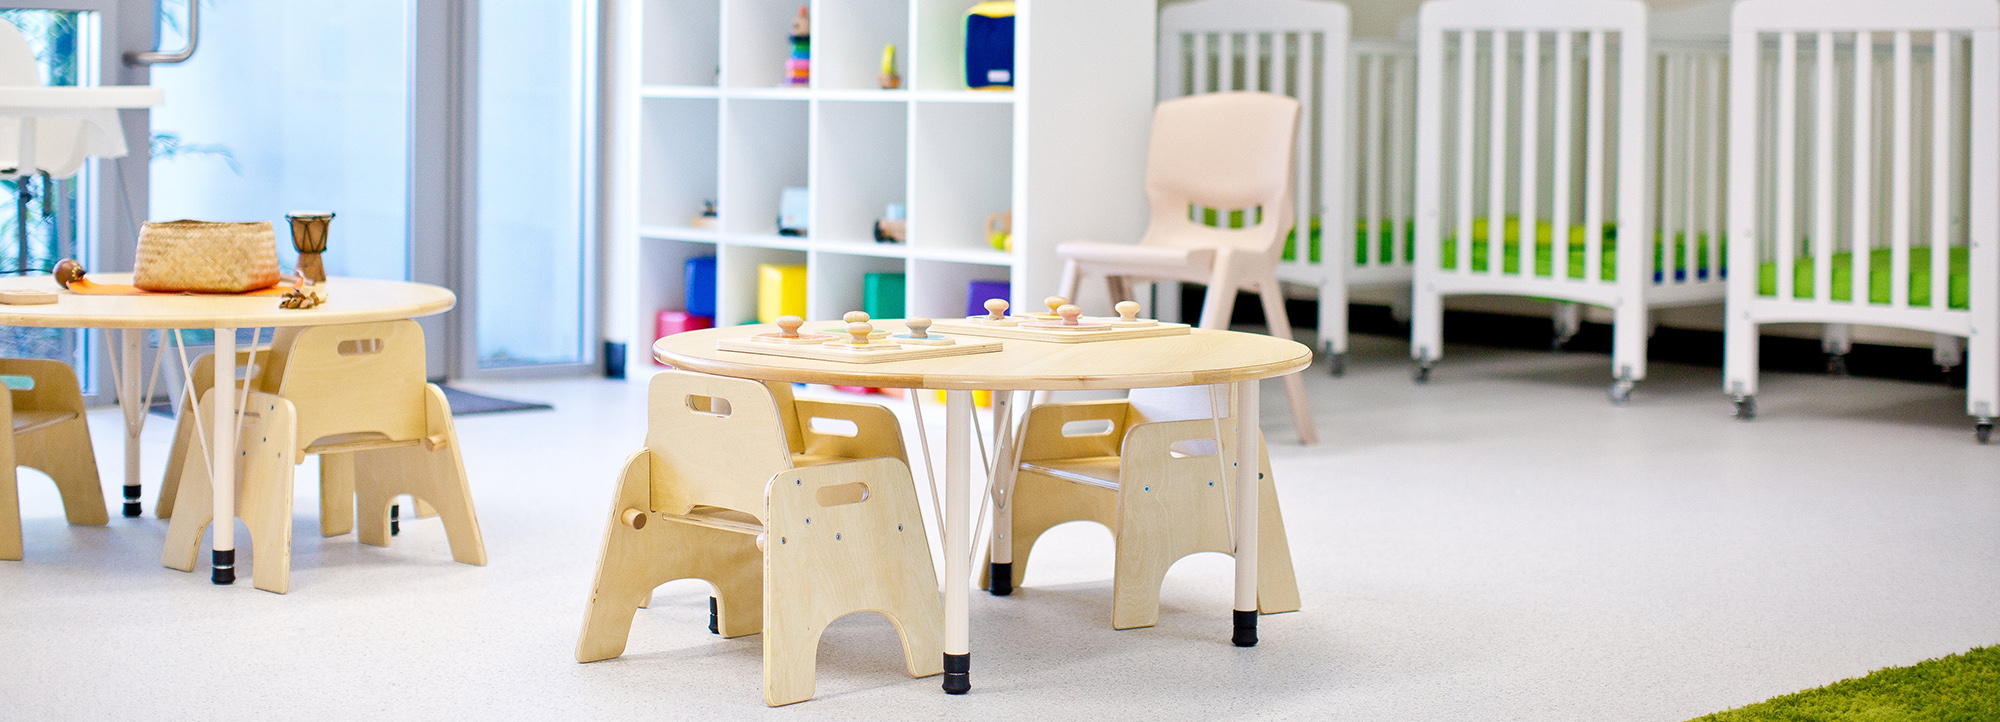 Perth Childcare